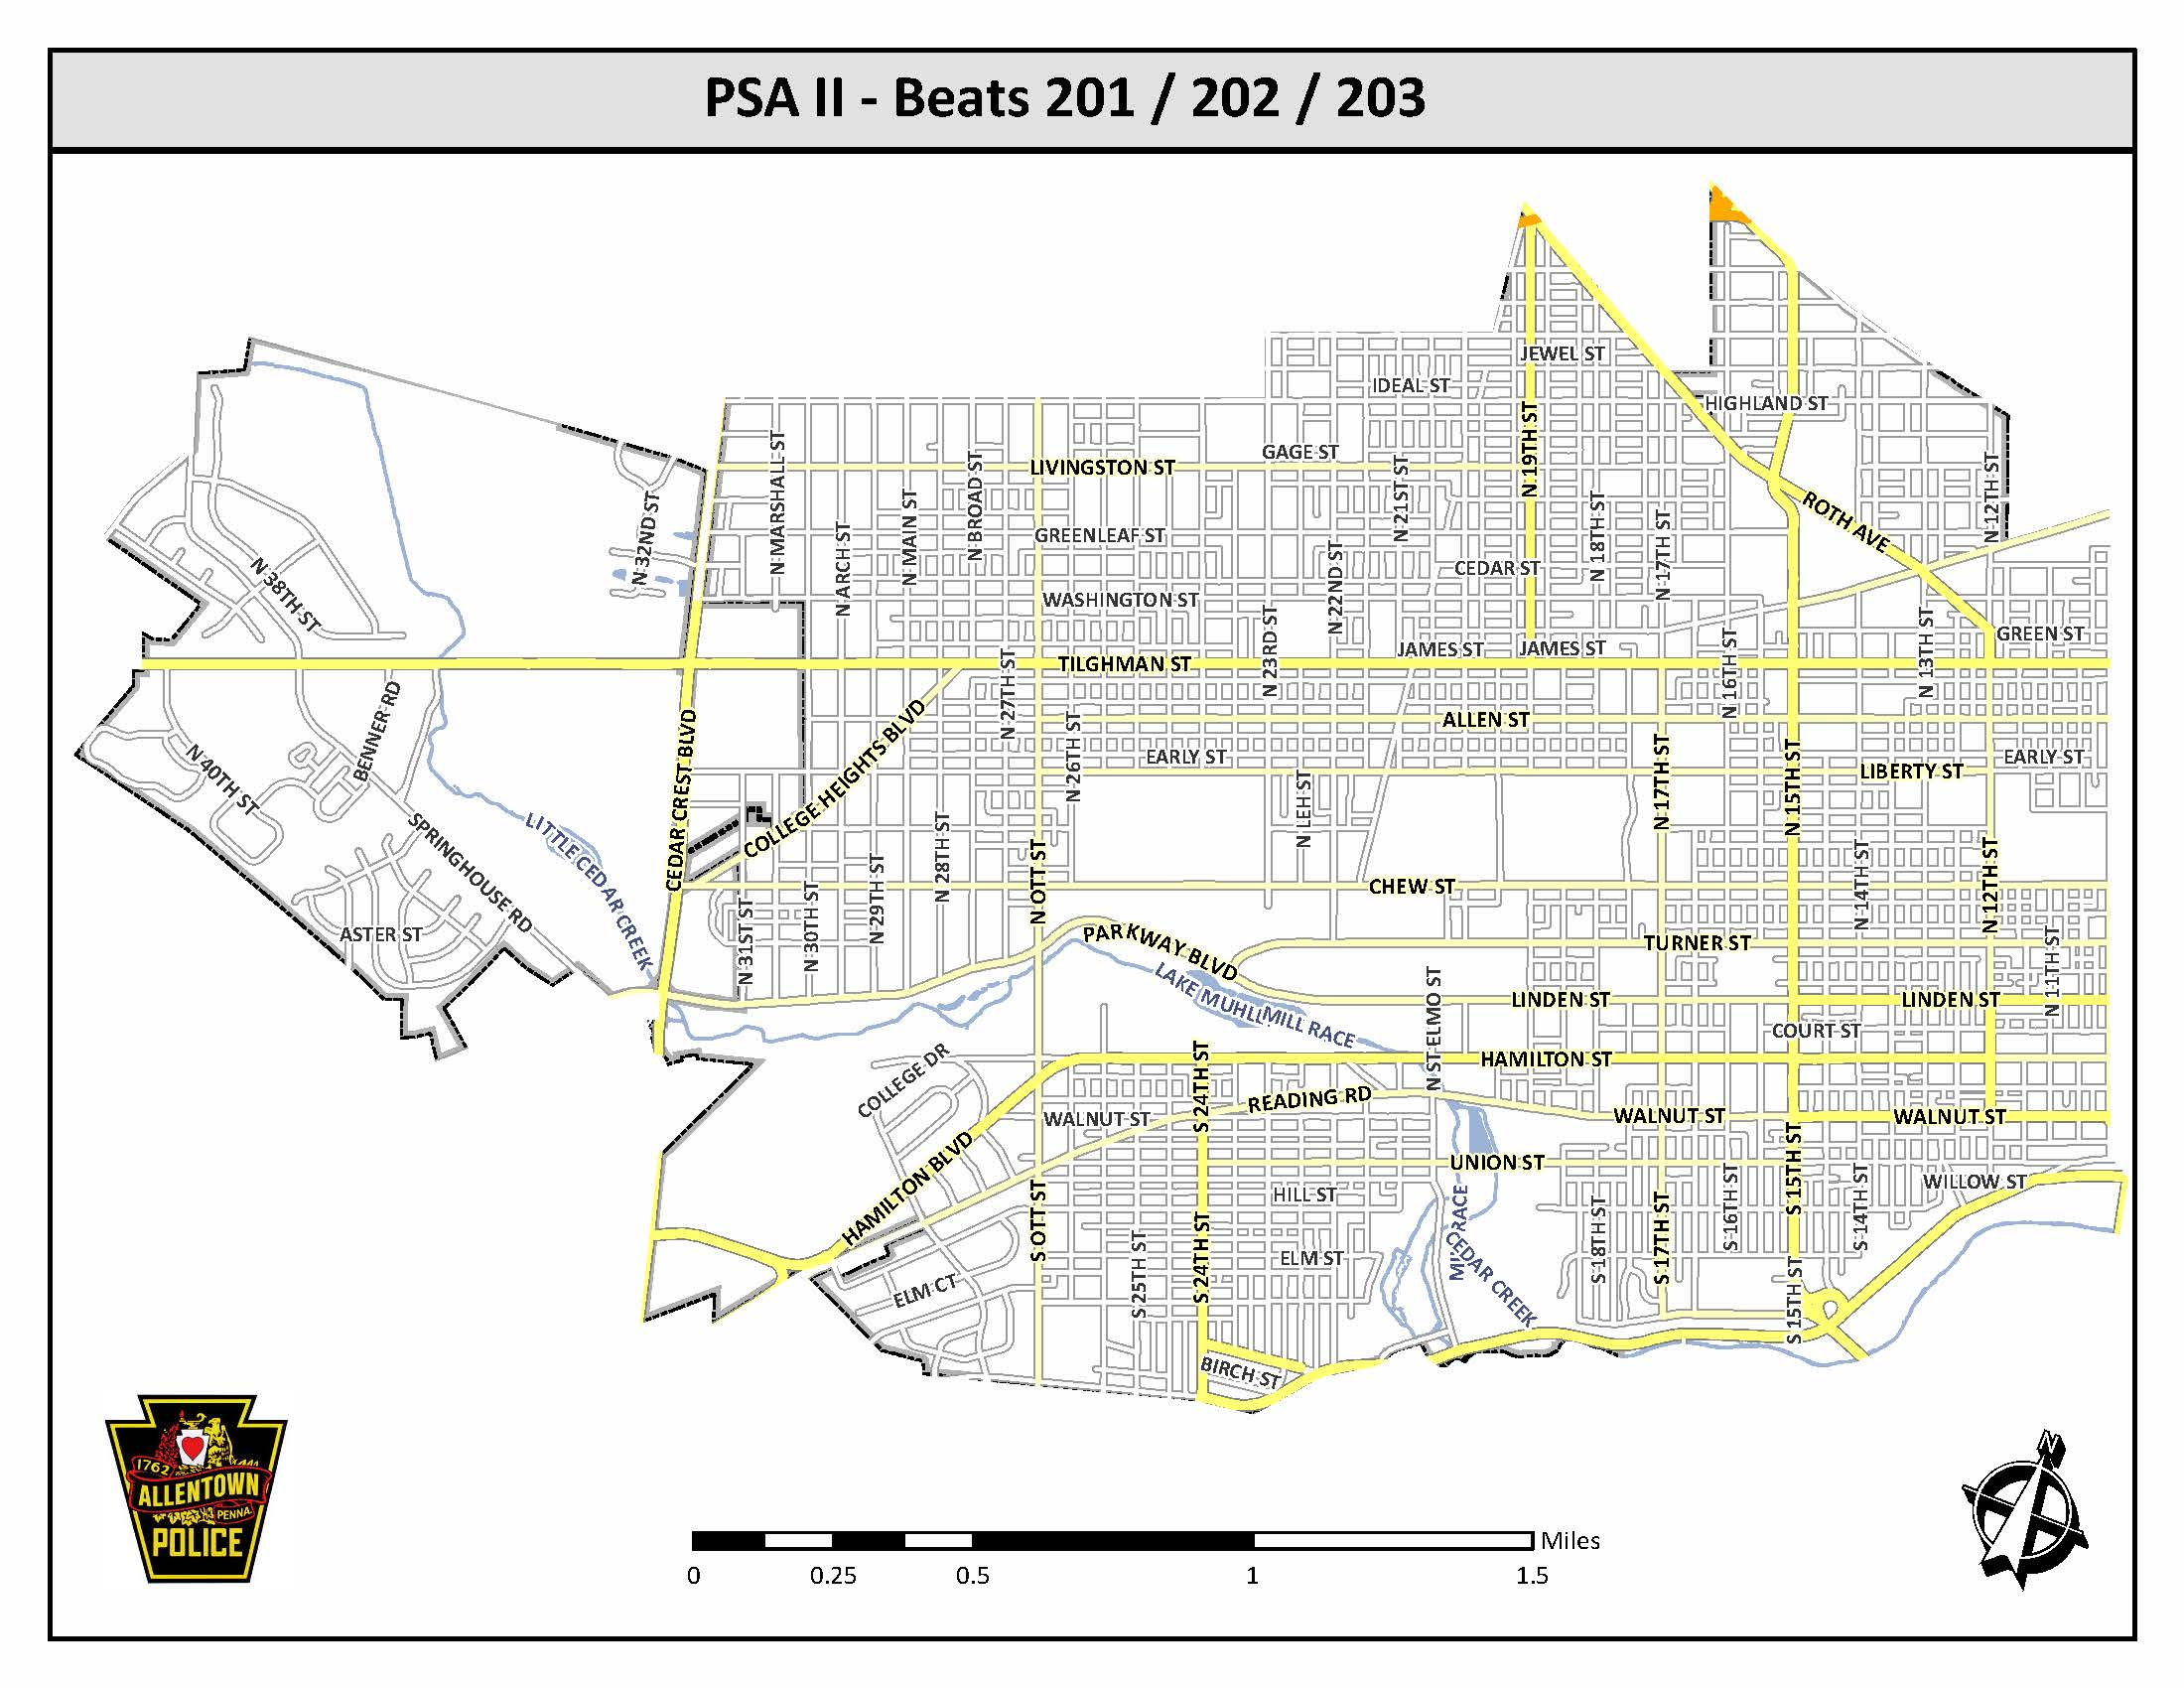 Click here to load the Police Service Area II Beats 201, 202, and 203 pdf.